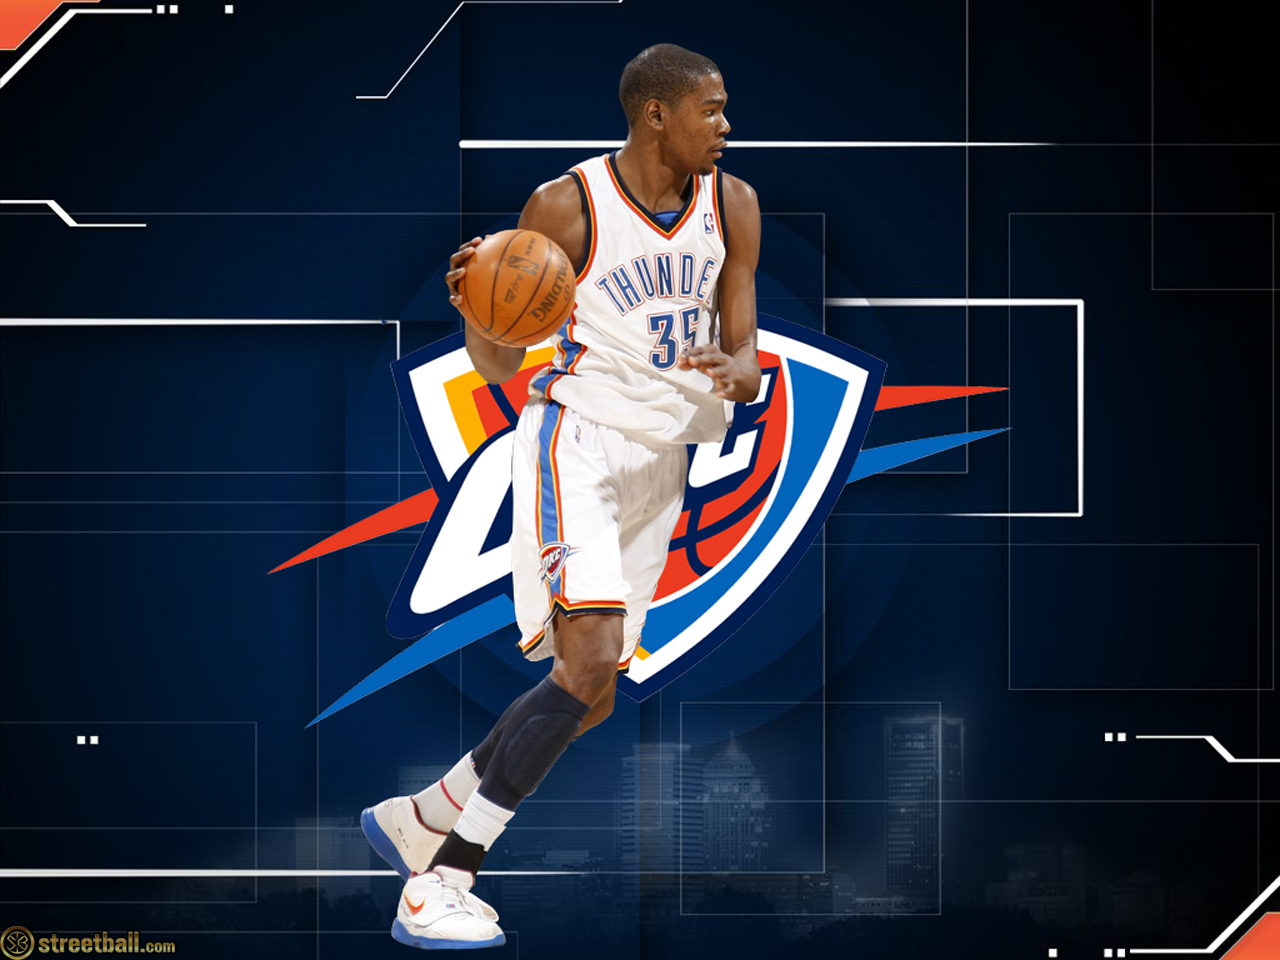 Wallpapermill Com Kevin Durant Wallpapers Oklahoma City Thunder Nba Wallpapers